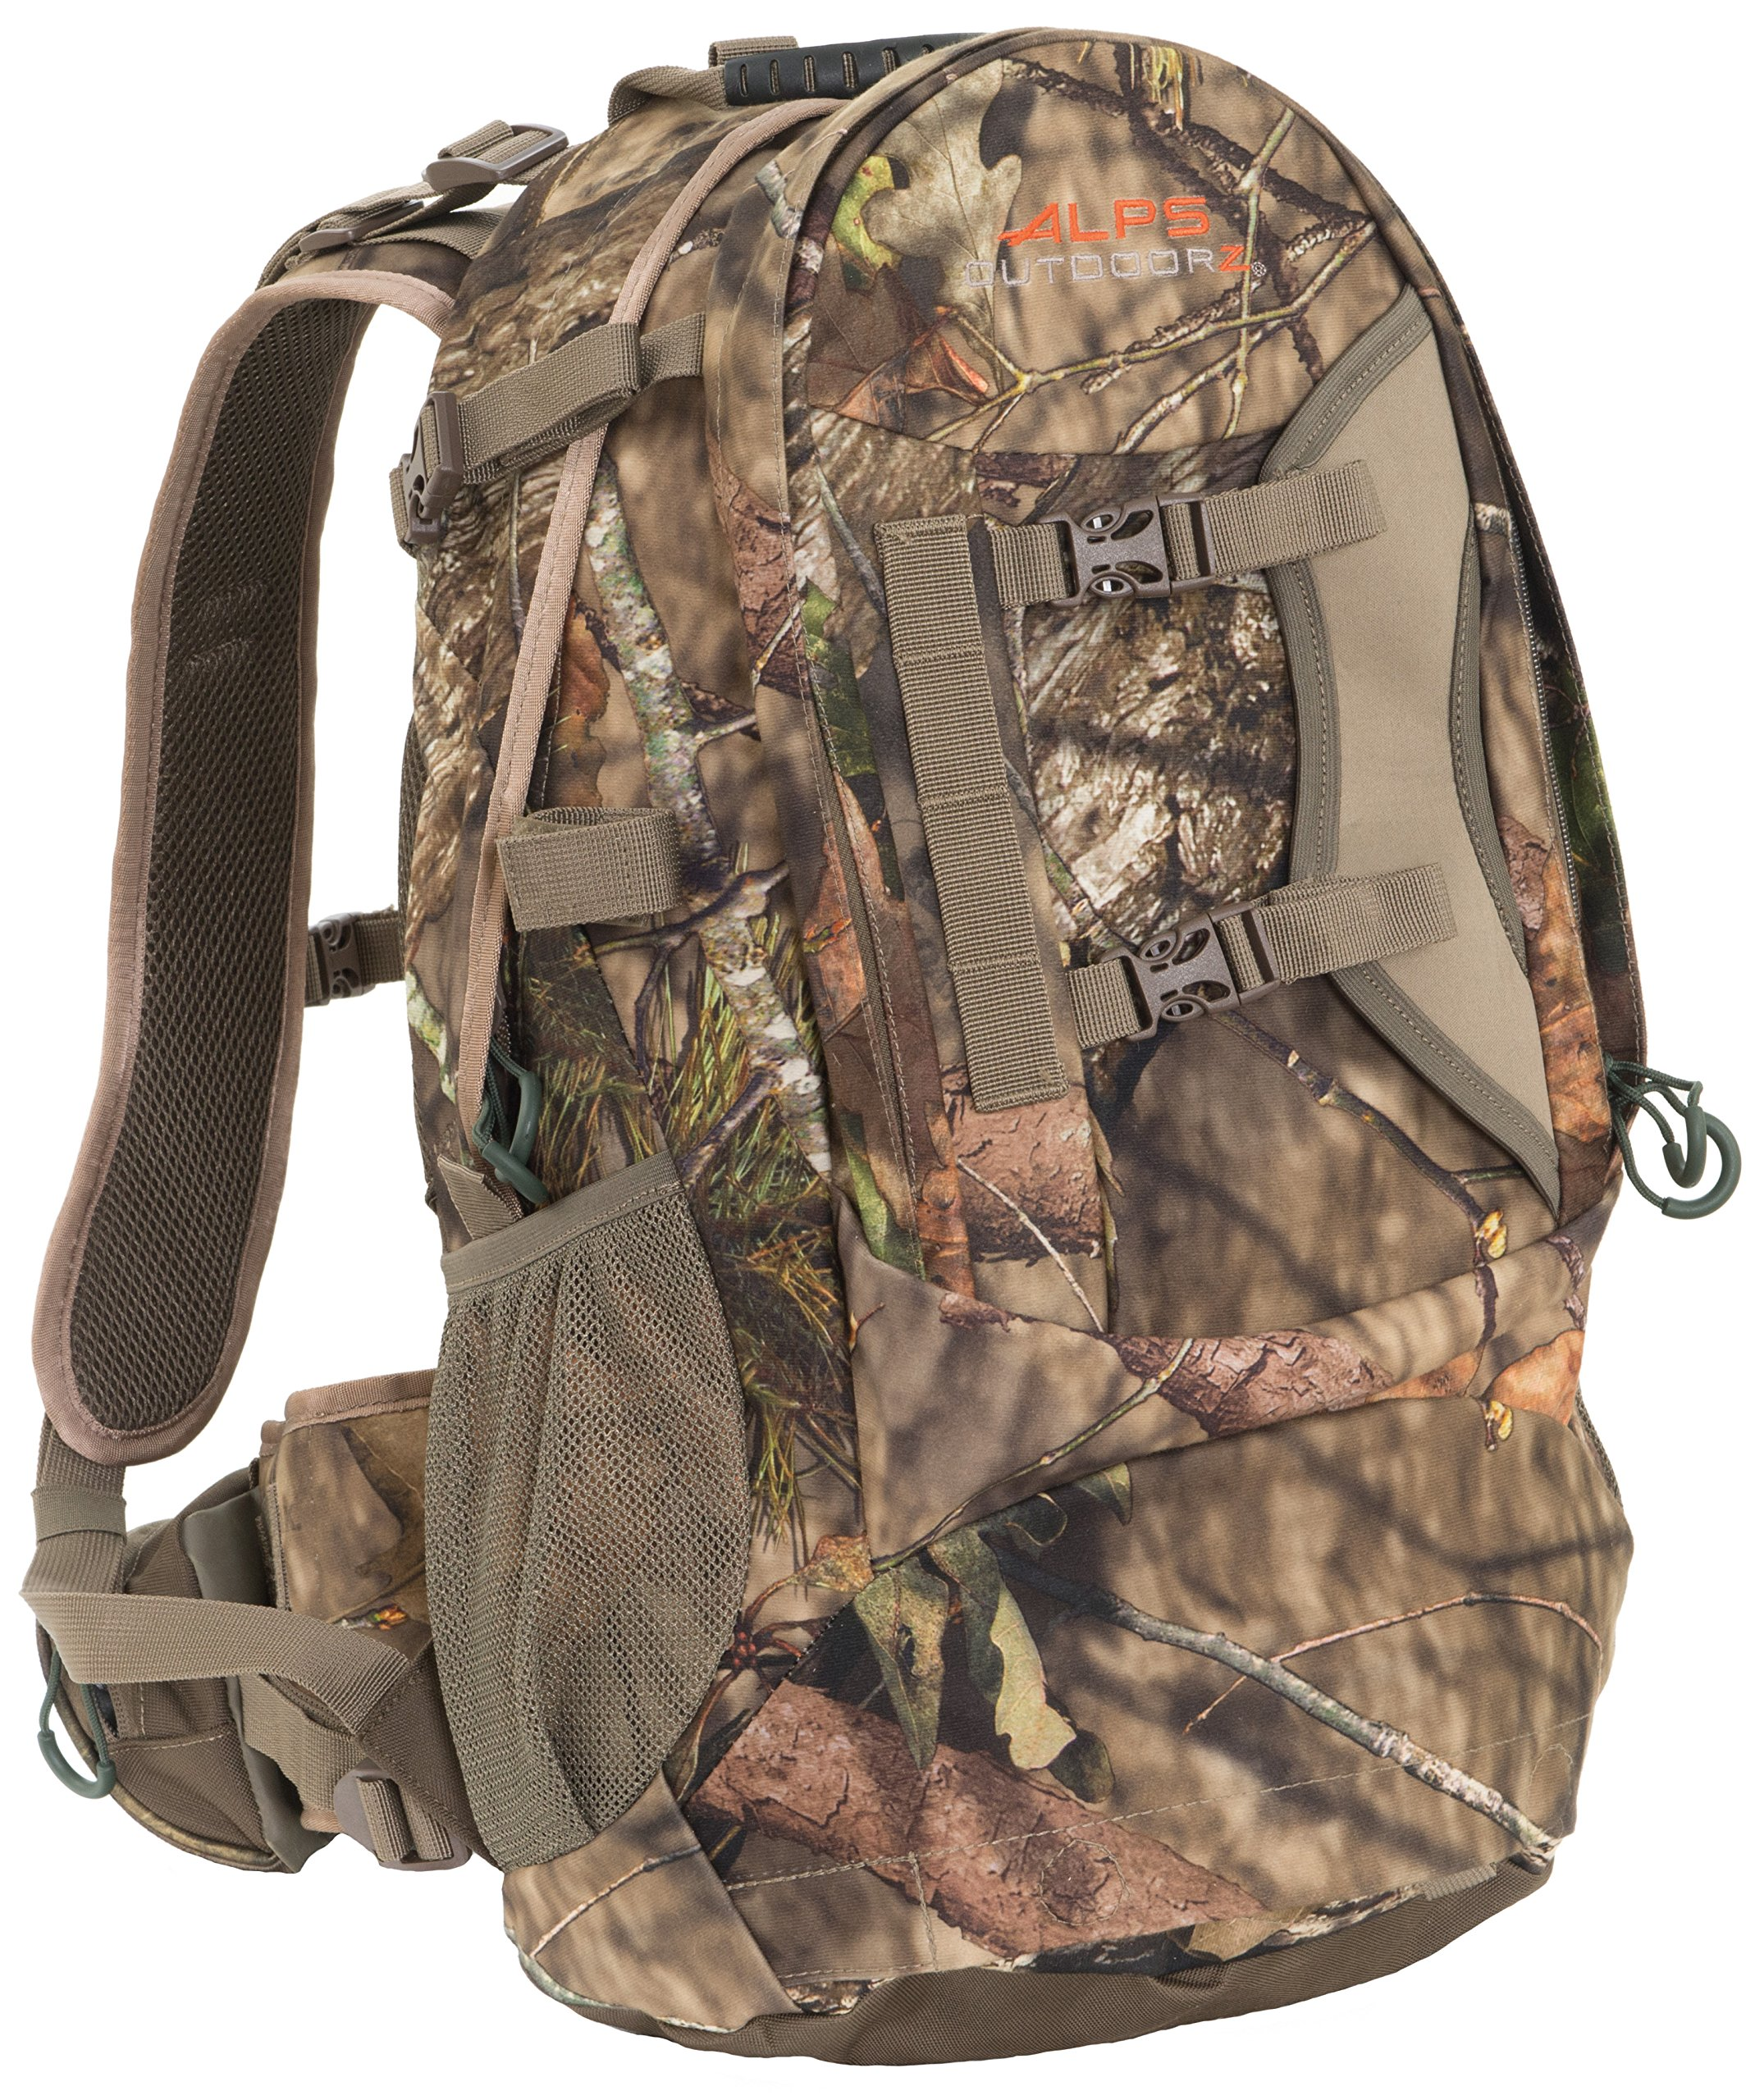 ALPS OutdoorZ Pursuit, Mossy Oak Country by ALPS OutdoorZ